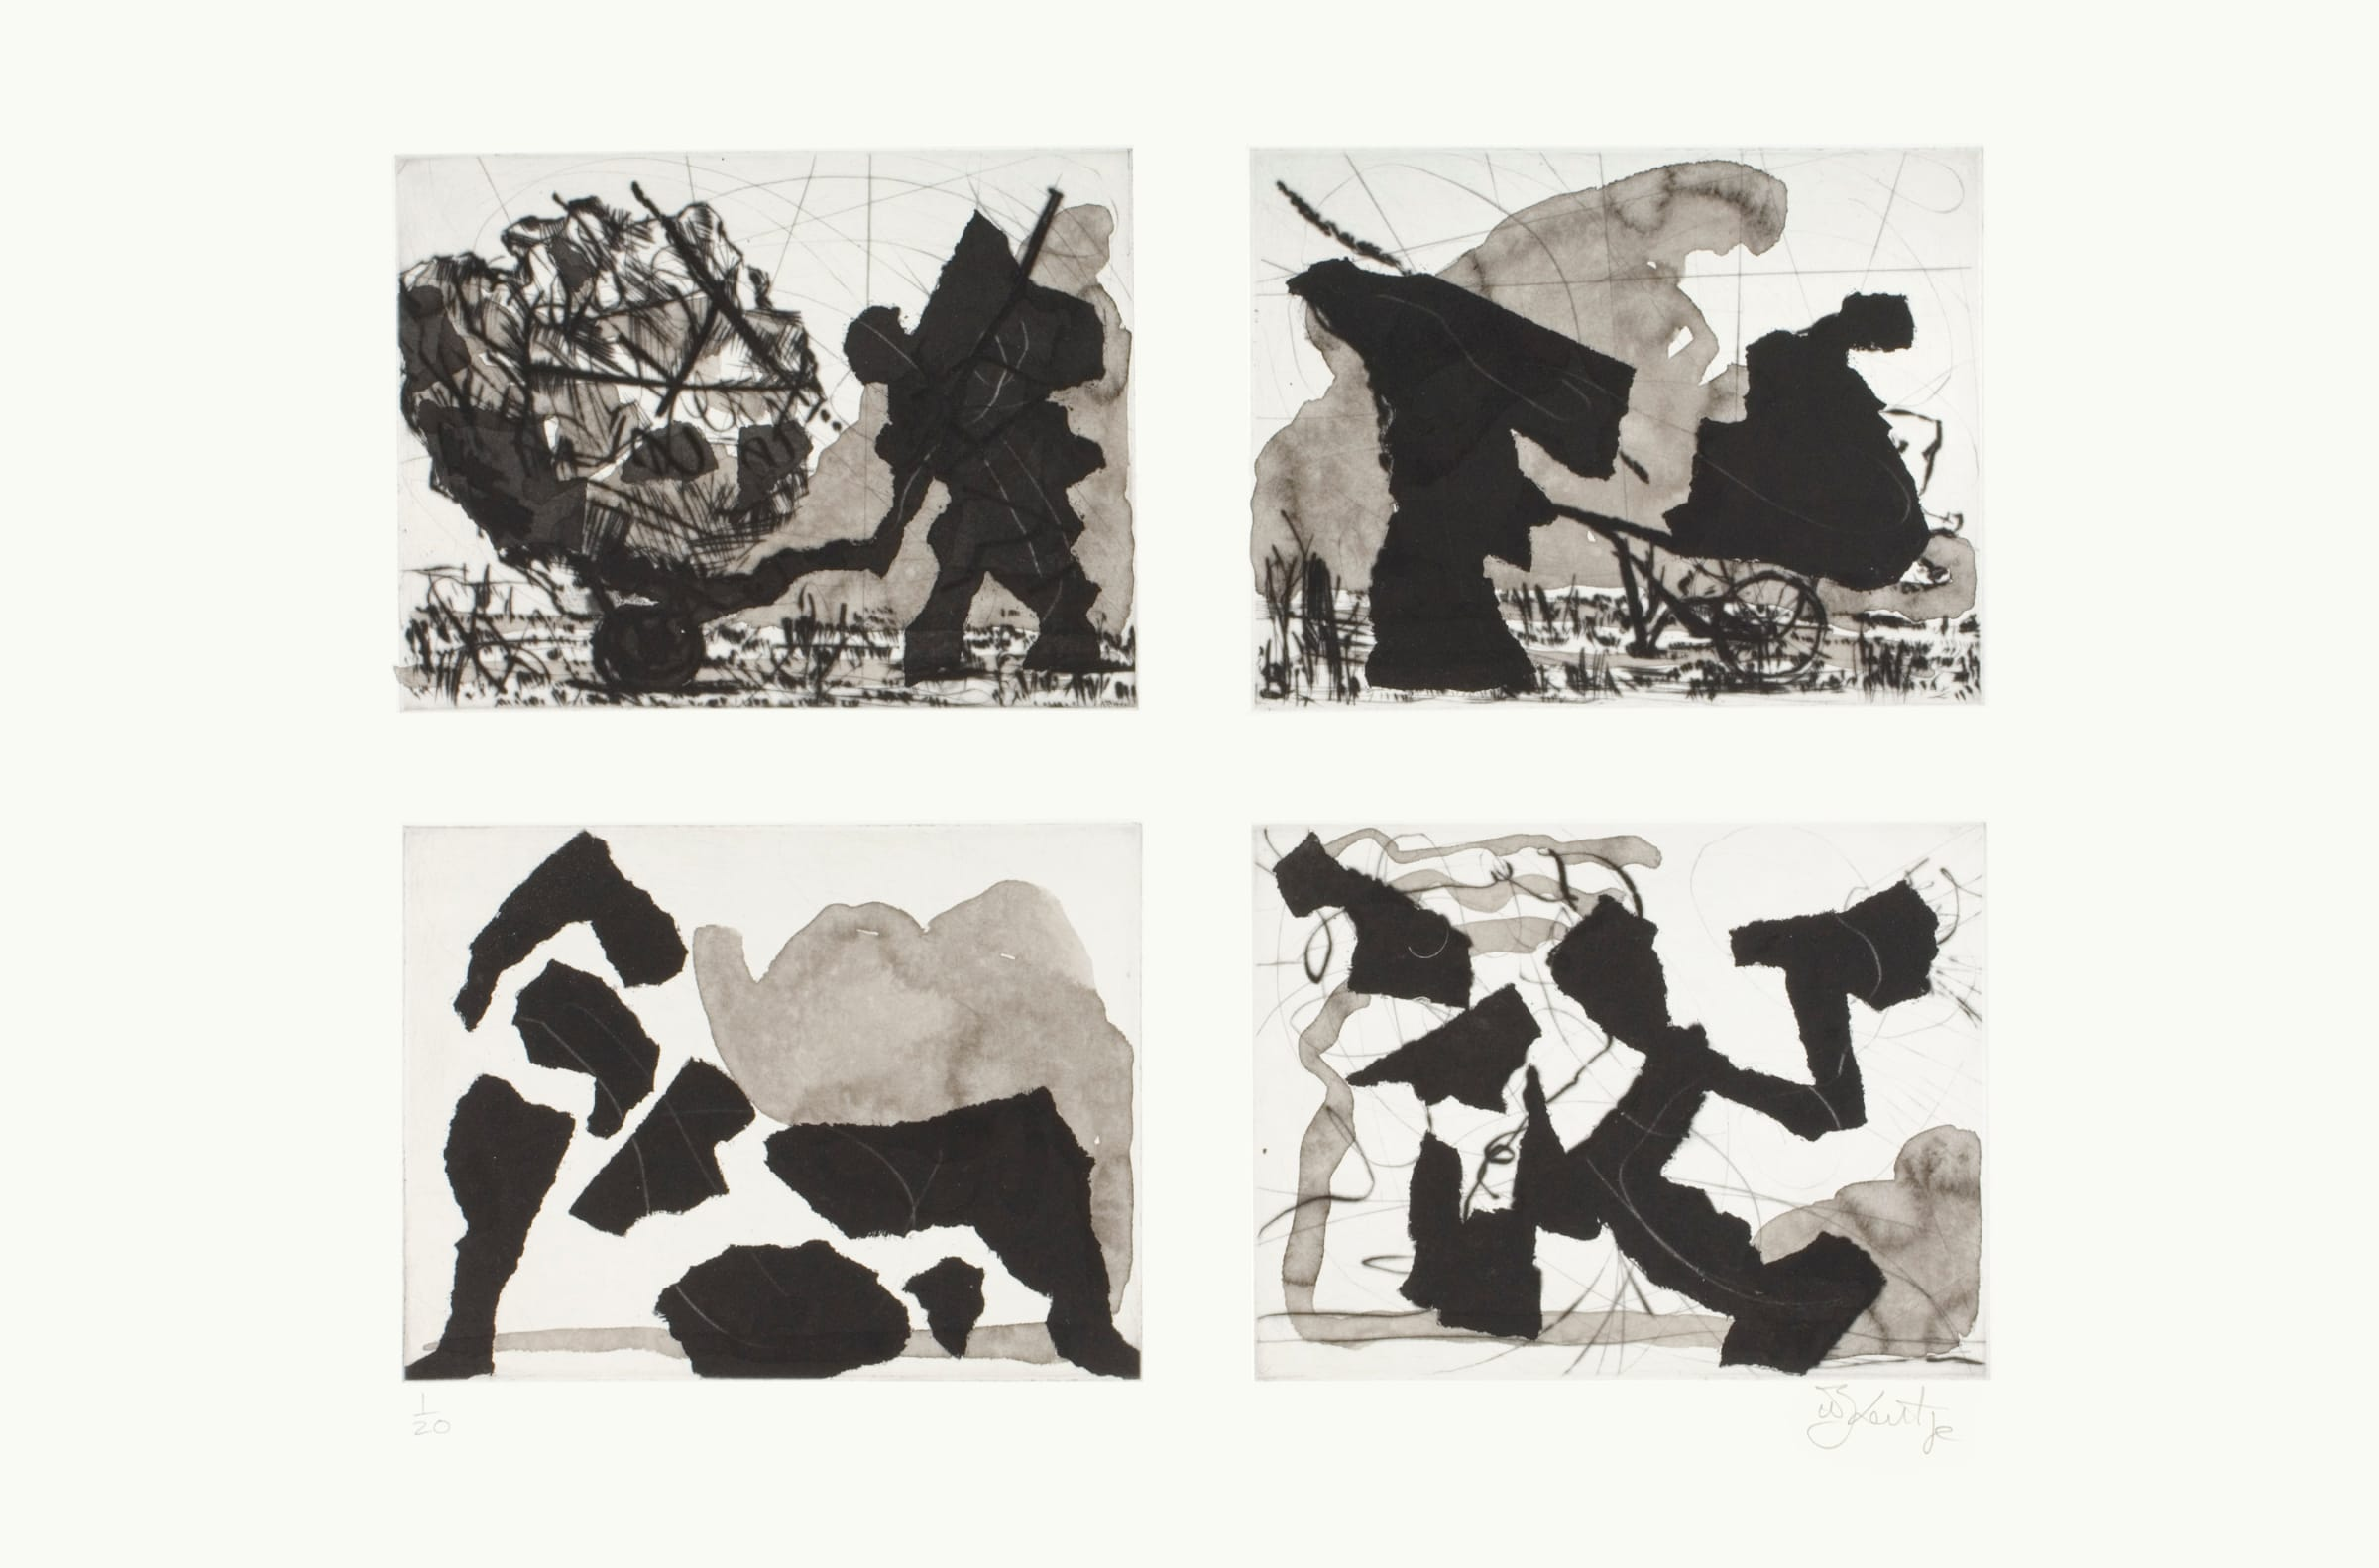 William Kentridge, Untitled (Four Shadows), 2006